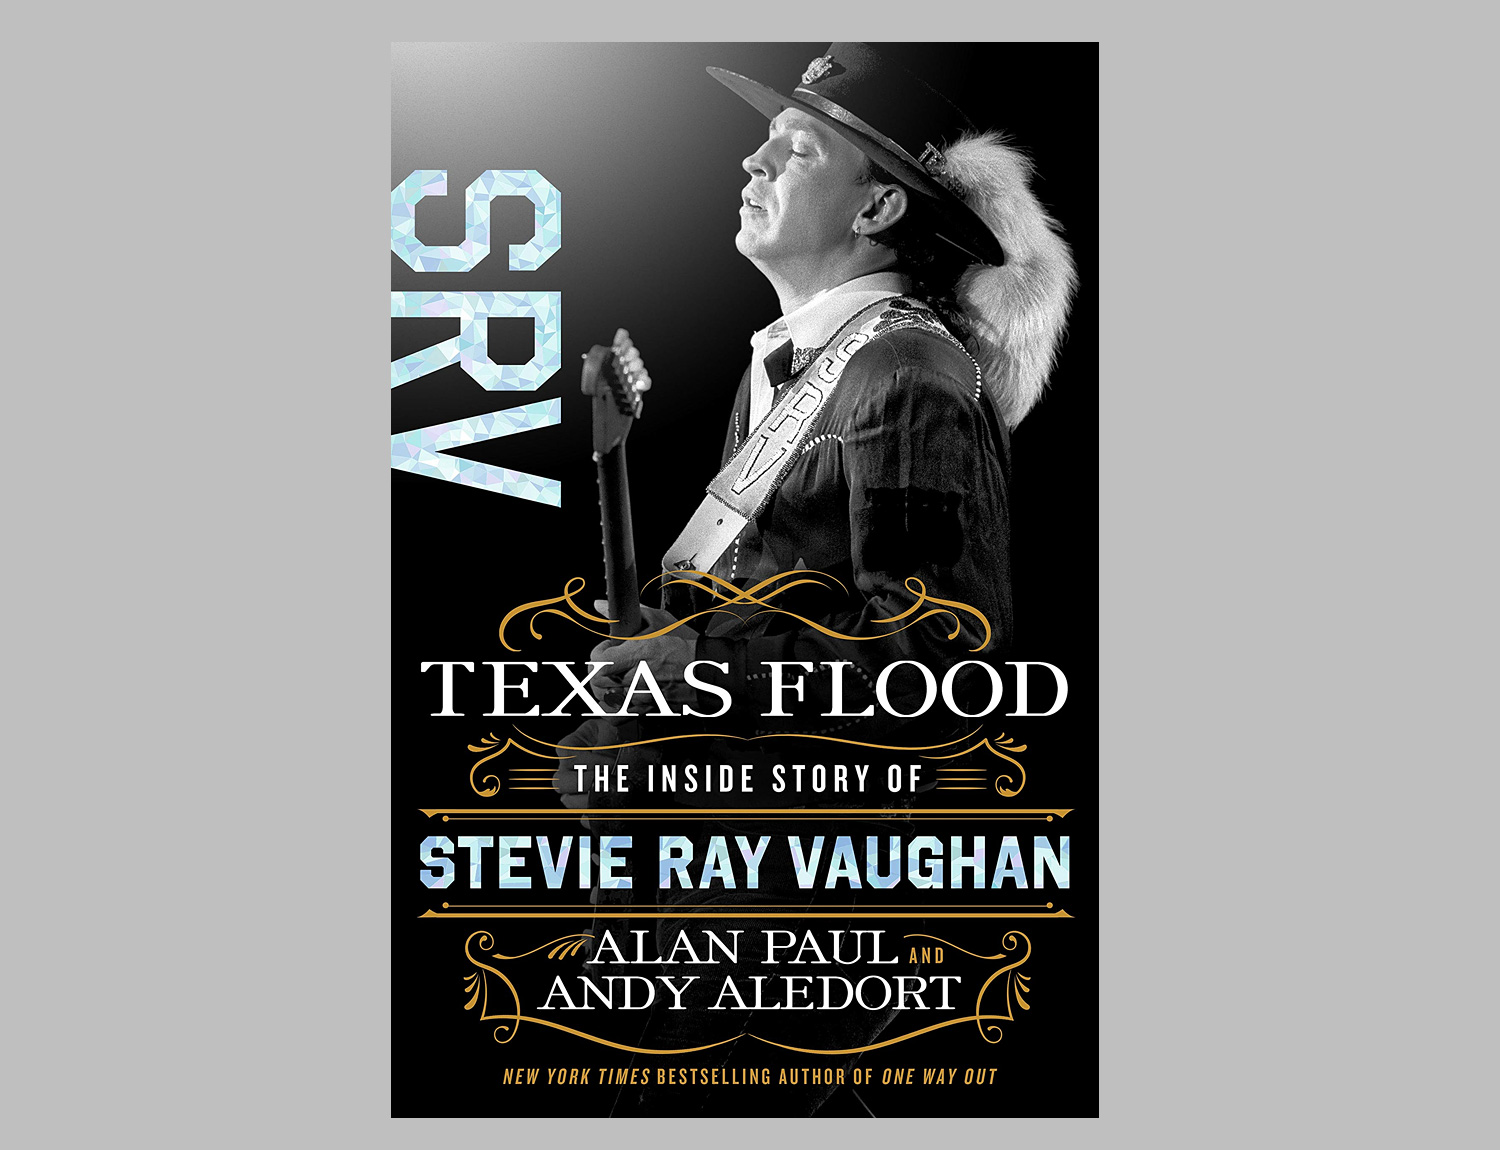 Texas Flood: The Inside Story of Stevie Ray Vaughan at werd.com